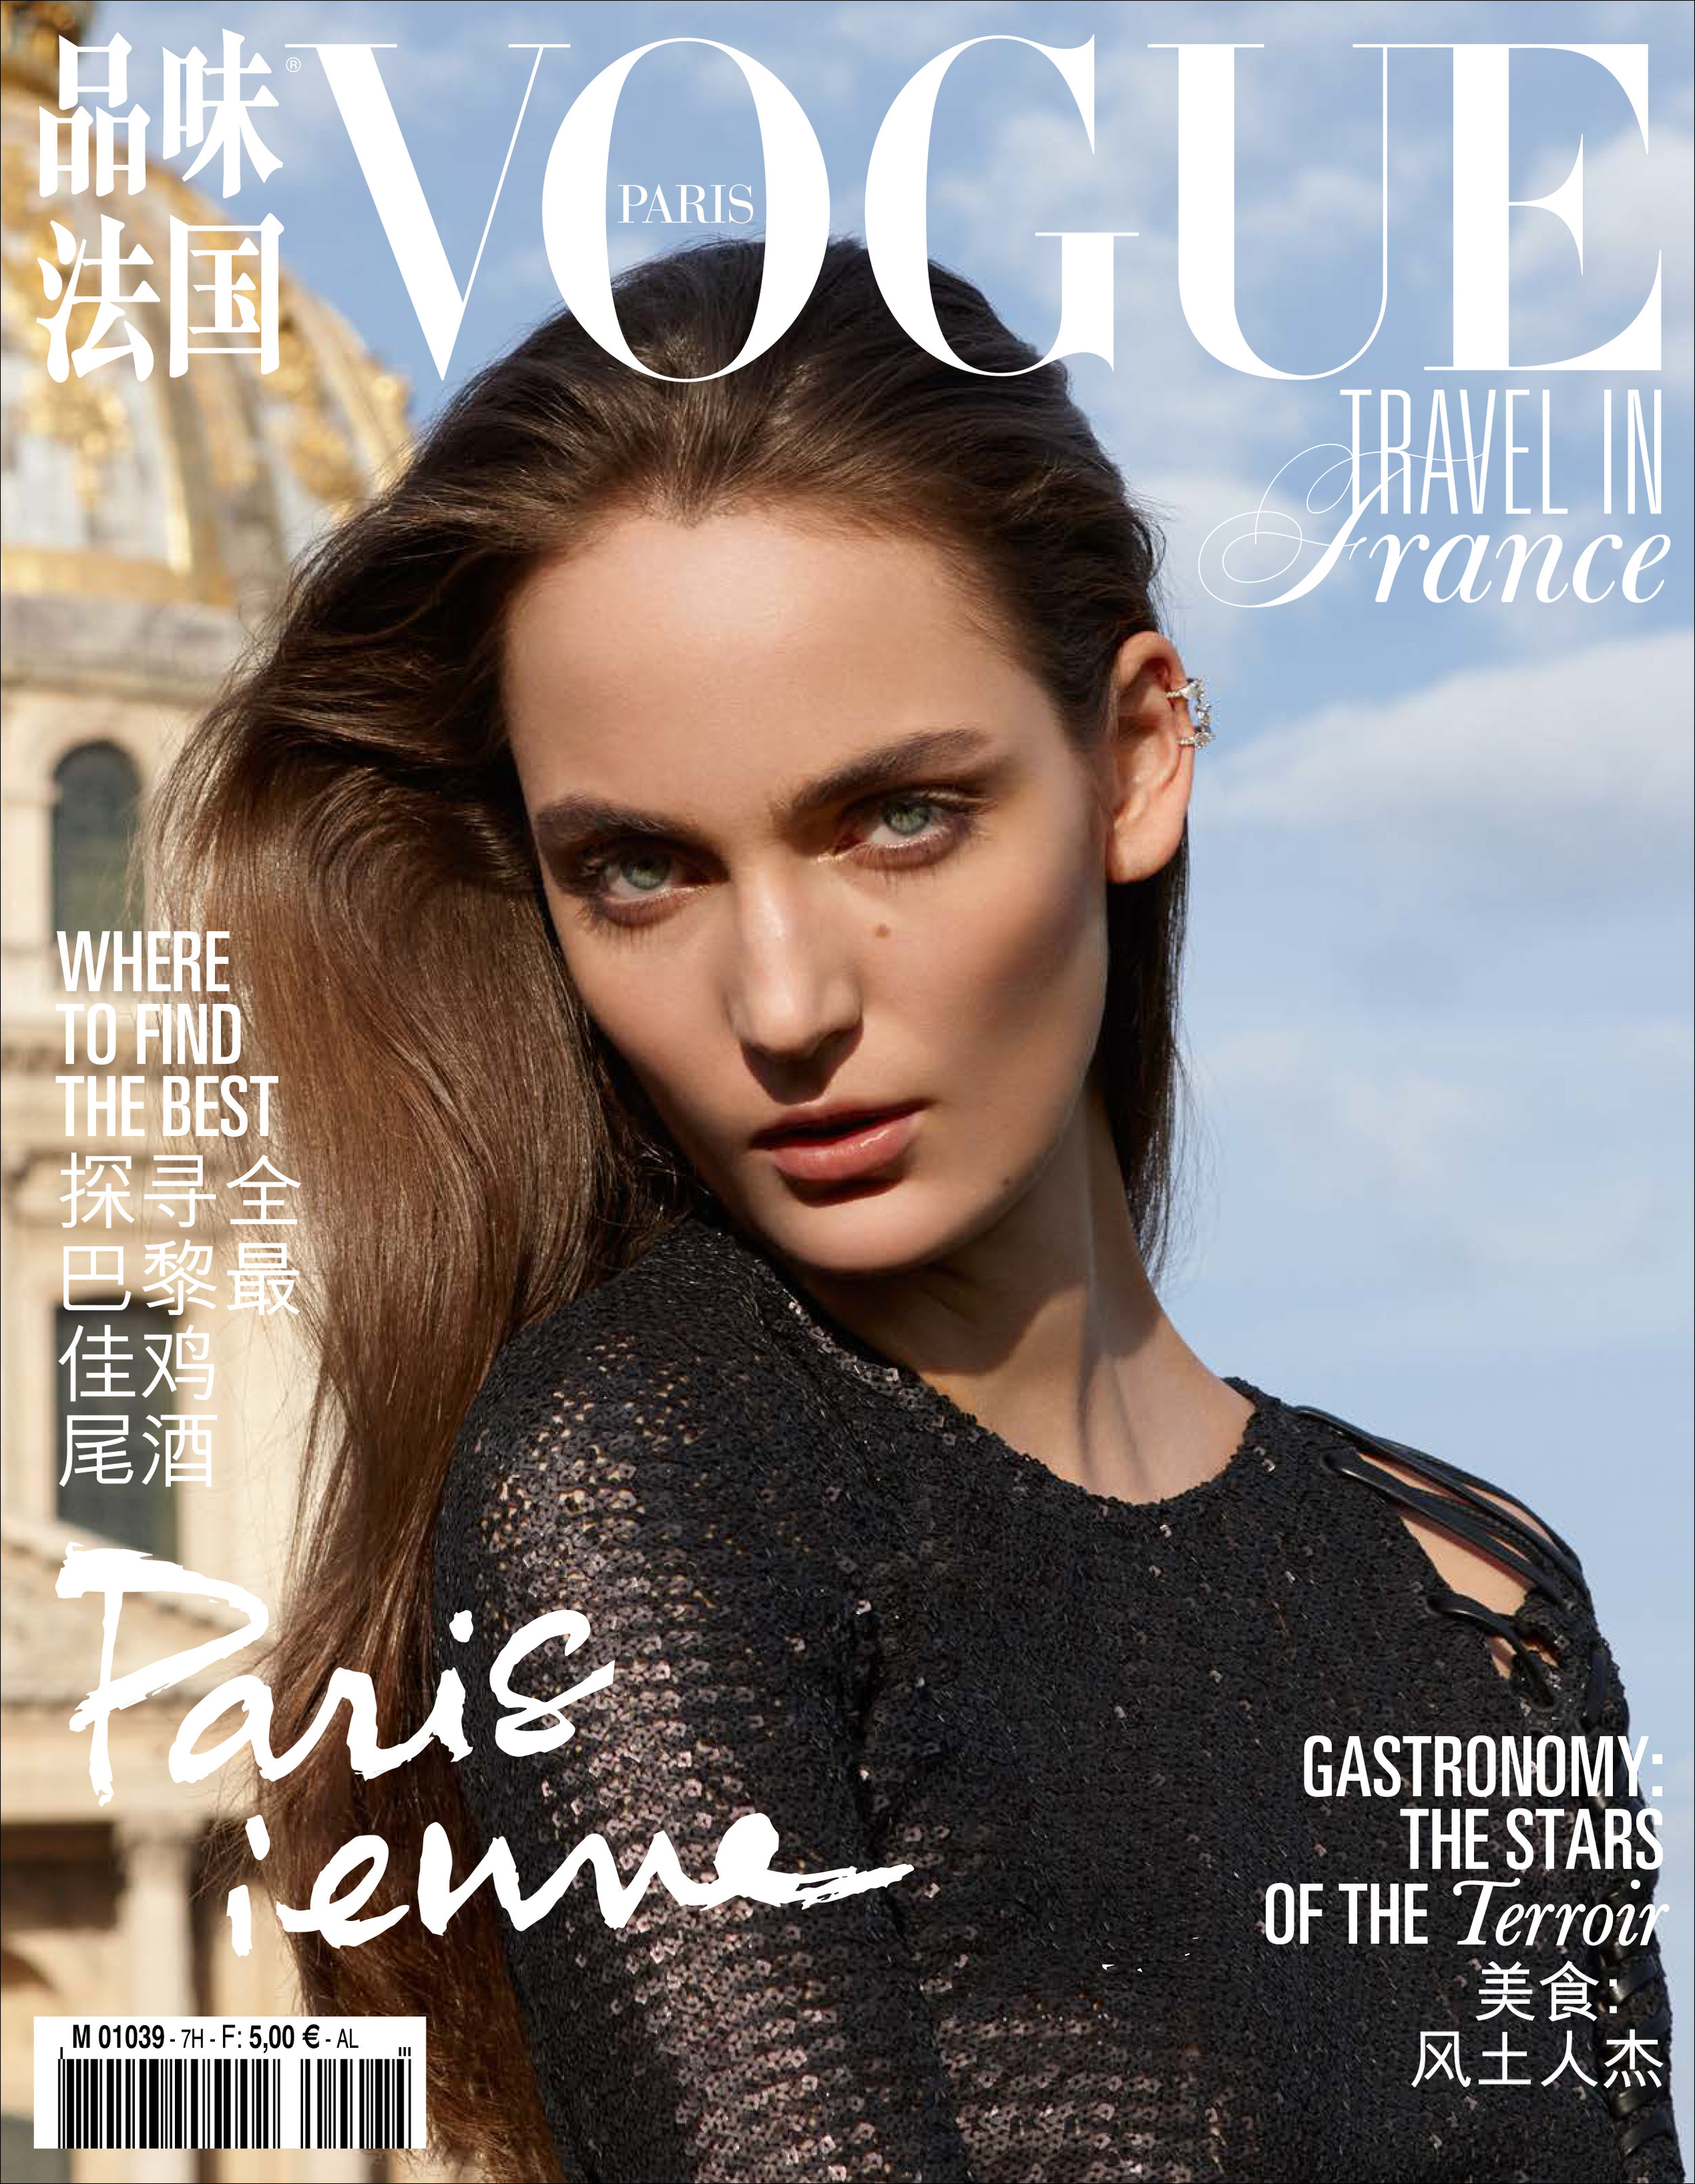 Vogue Travel in France - N°8 February 2016 Photographer - Nagi Sakai